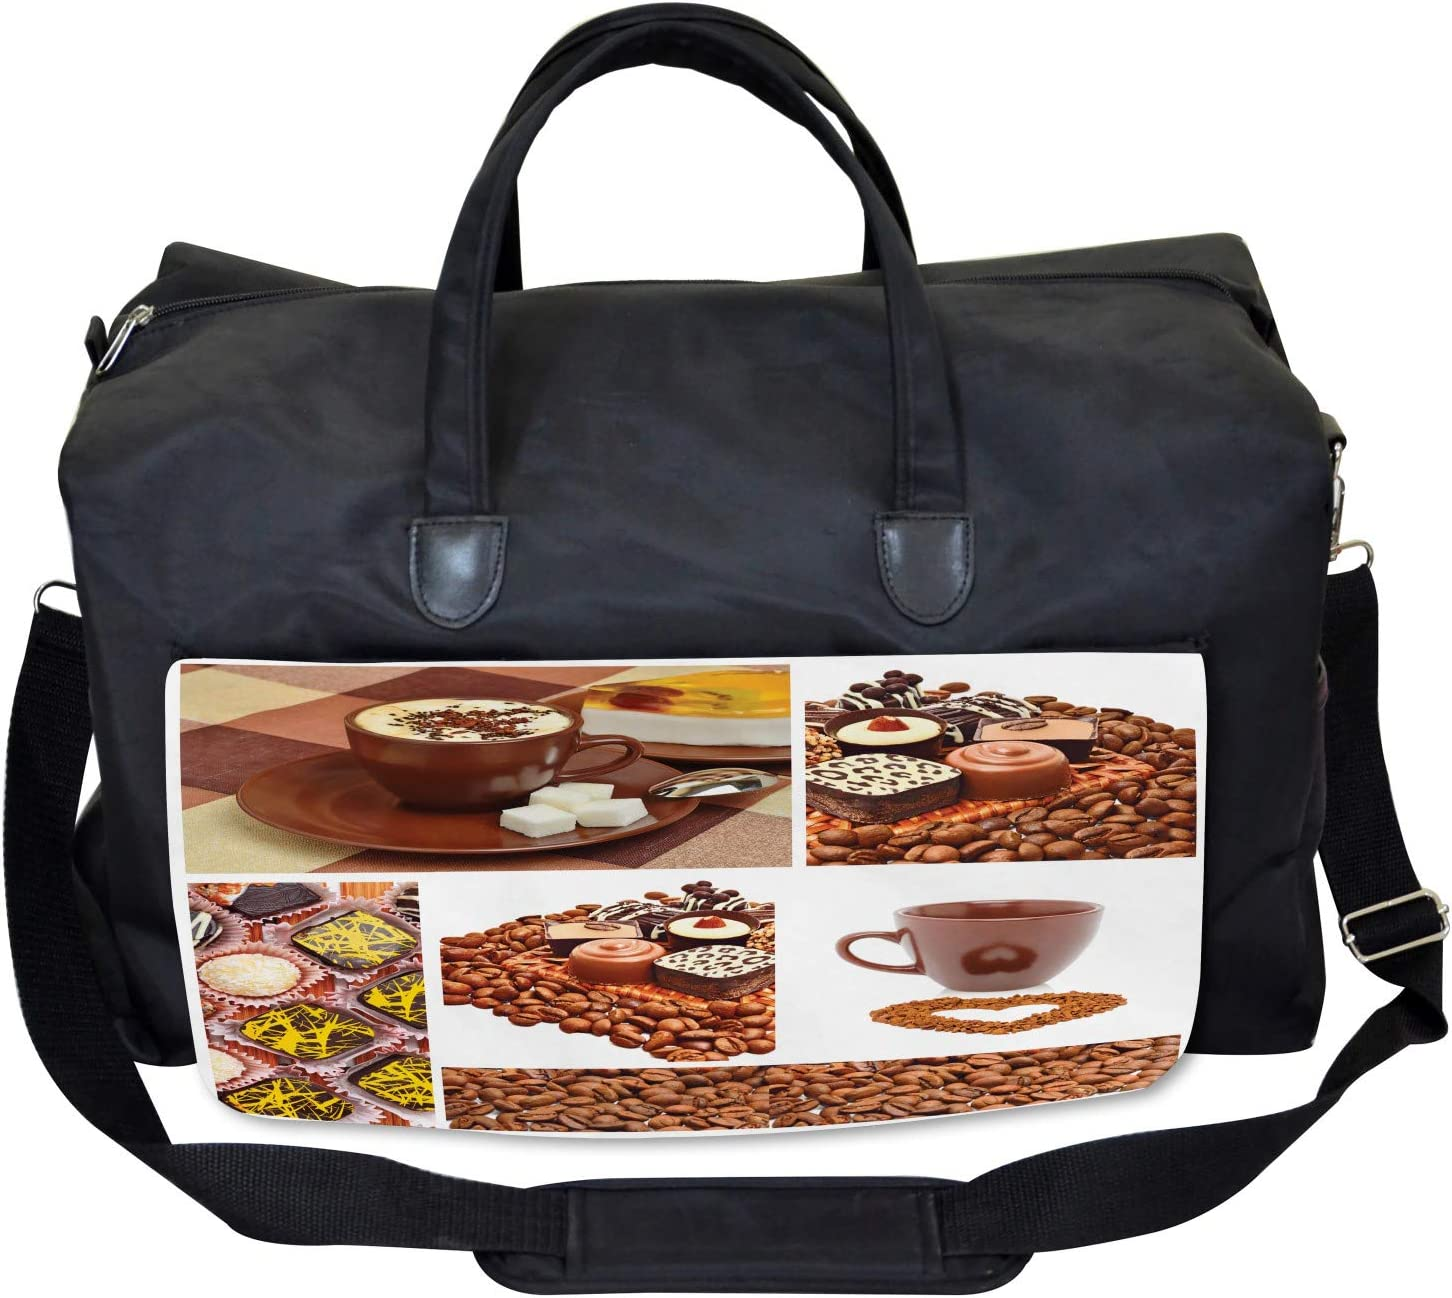 Sweets and Coffee Beans Ambesonne Coffee Gym Bag Large Weekender Carry-on